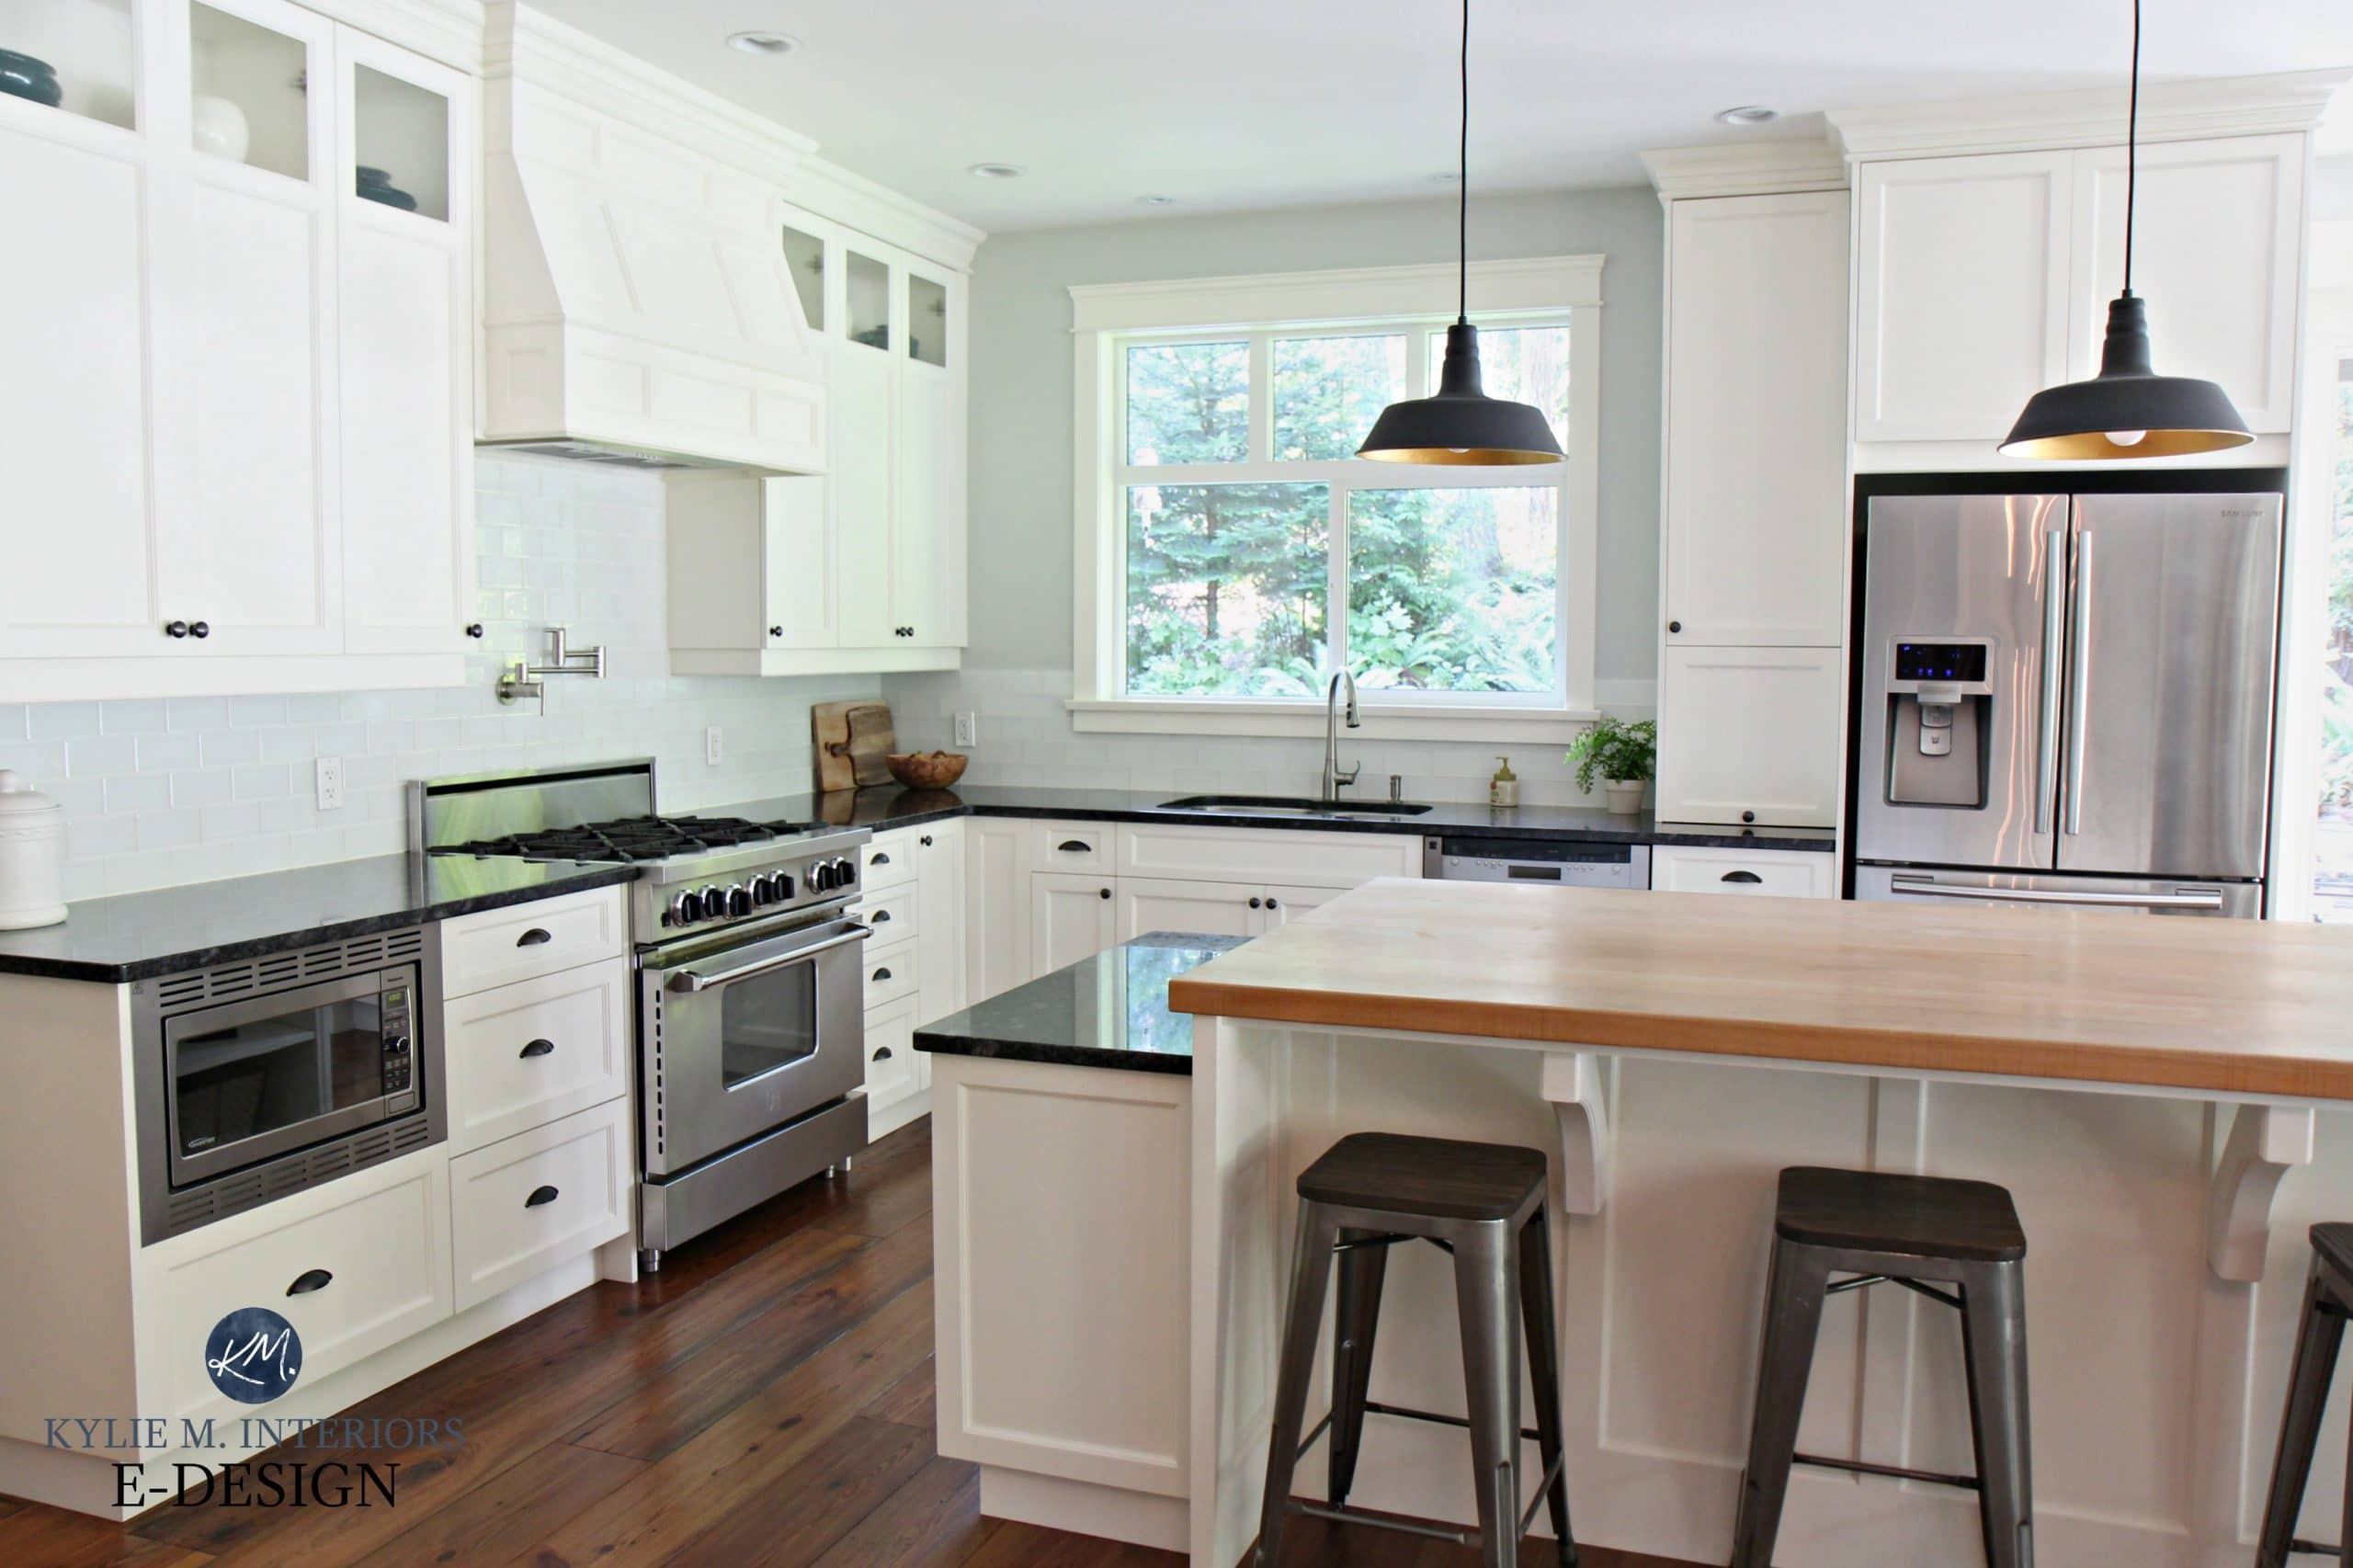 Farmhouse Country Style Kitchen Cloud White Cabinets Black Granite Countertop Butcher Block Island Wood Floor Kylie M Interiors Edesign Online Paint Color Consultant 2